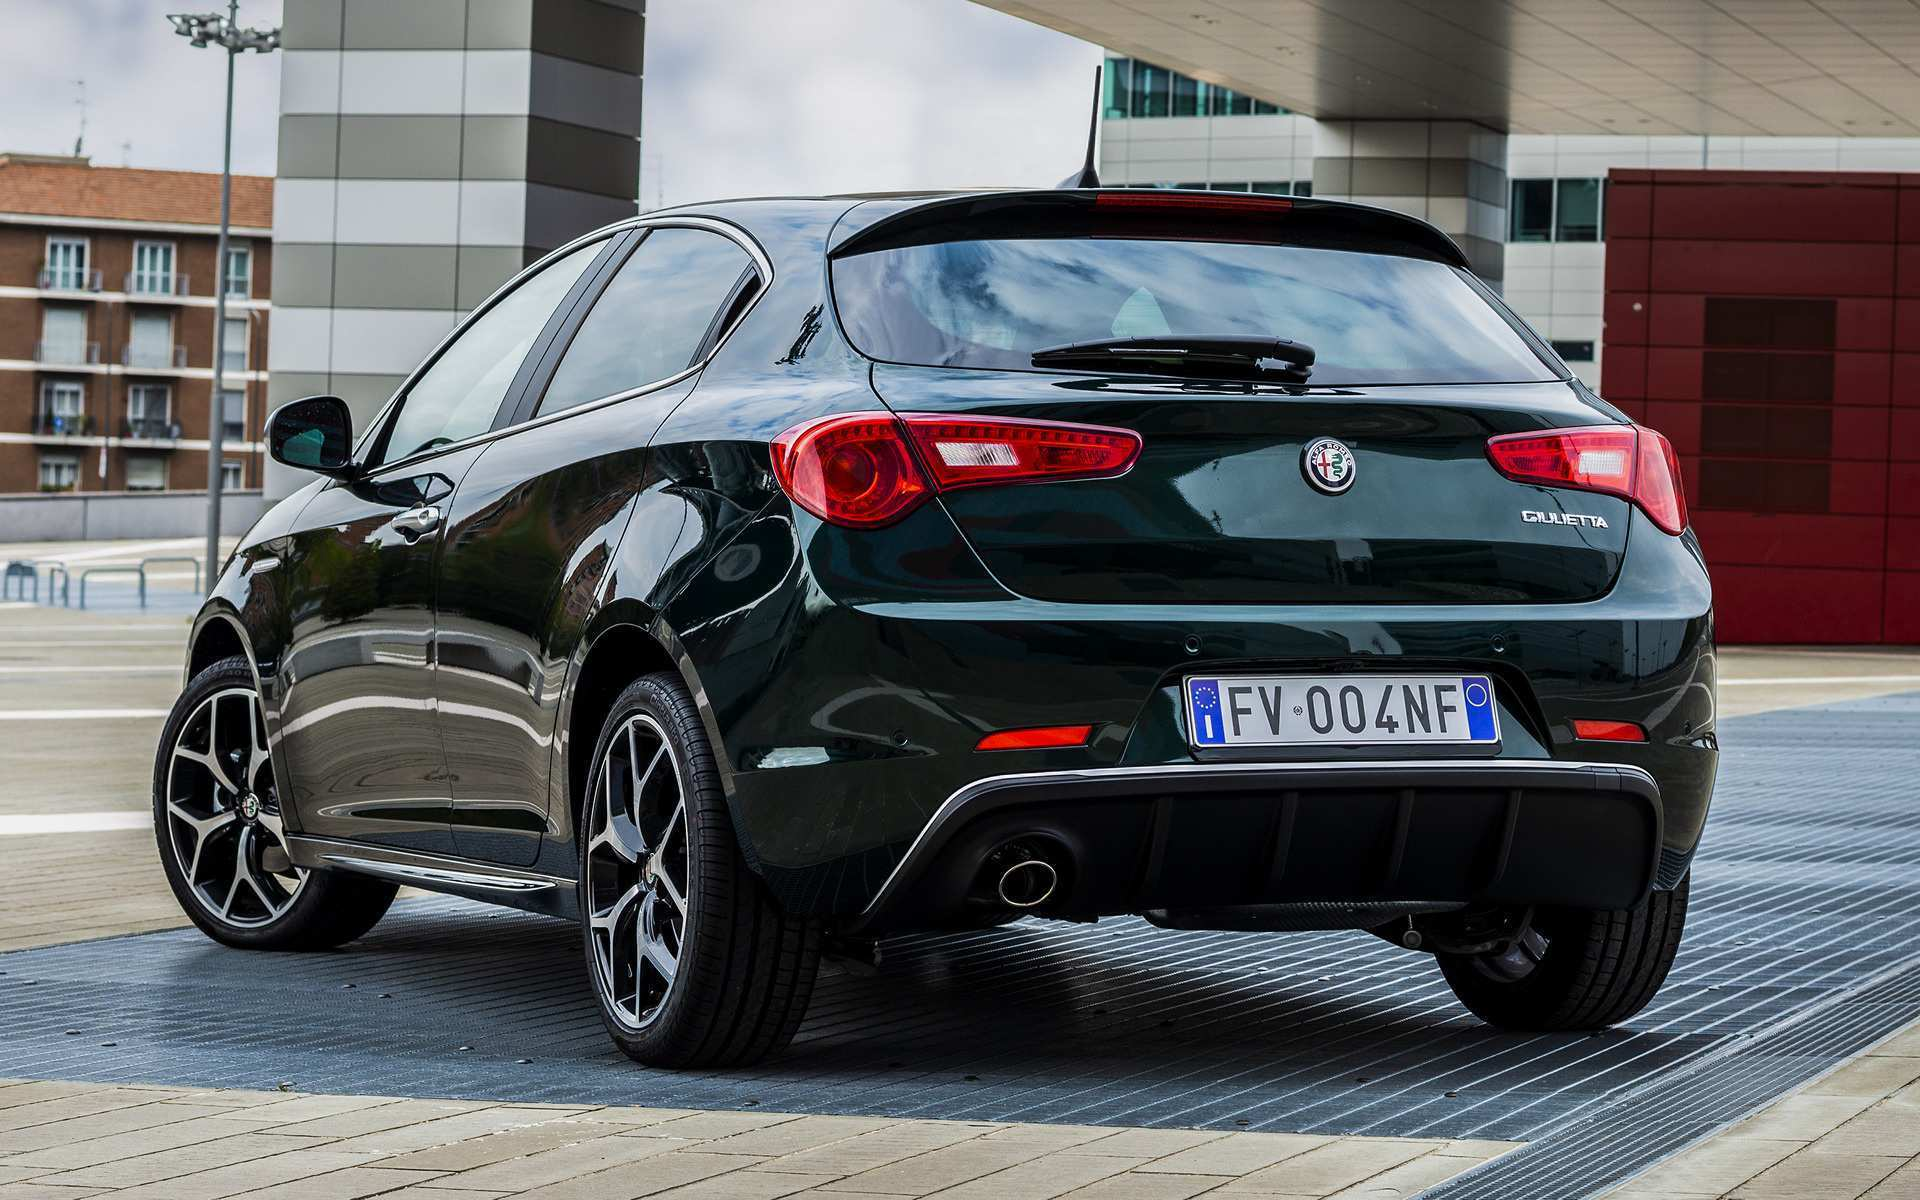 81 The Best 2019 Alfa Romeo Giulietta Pictures